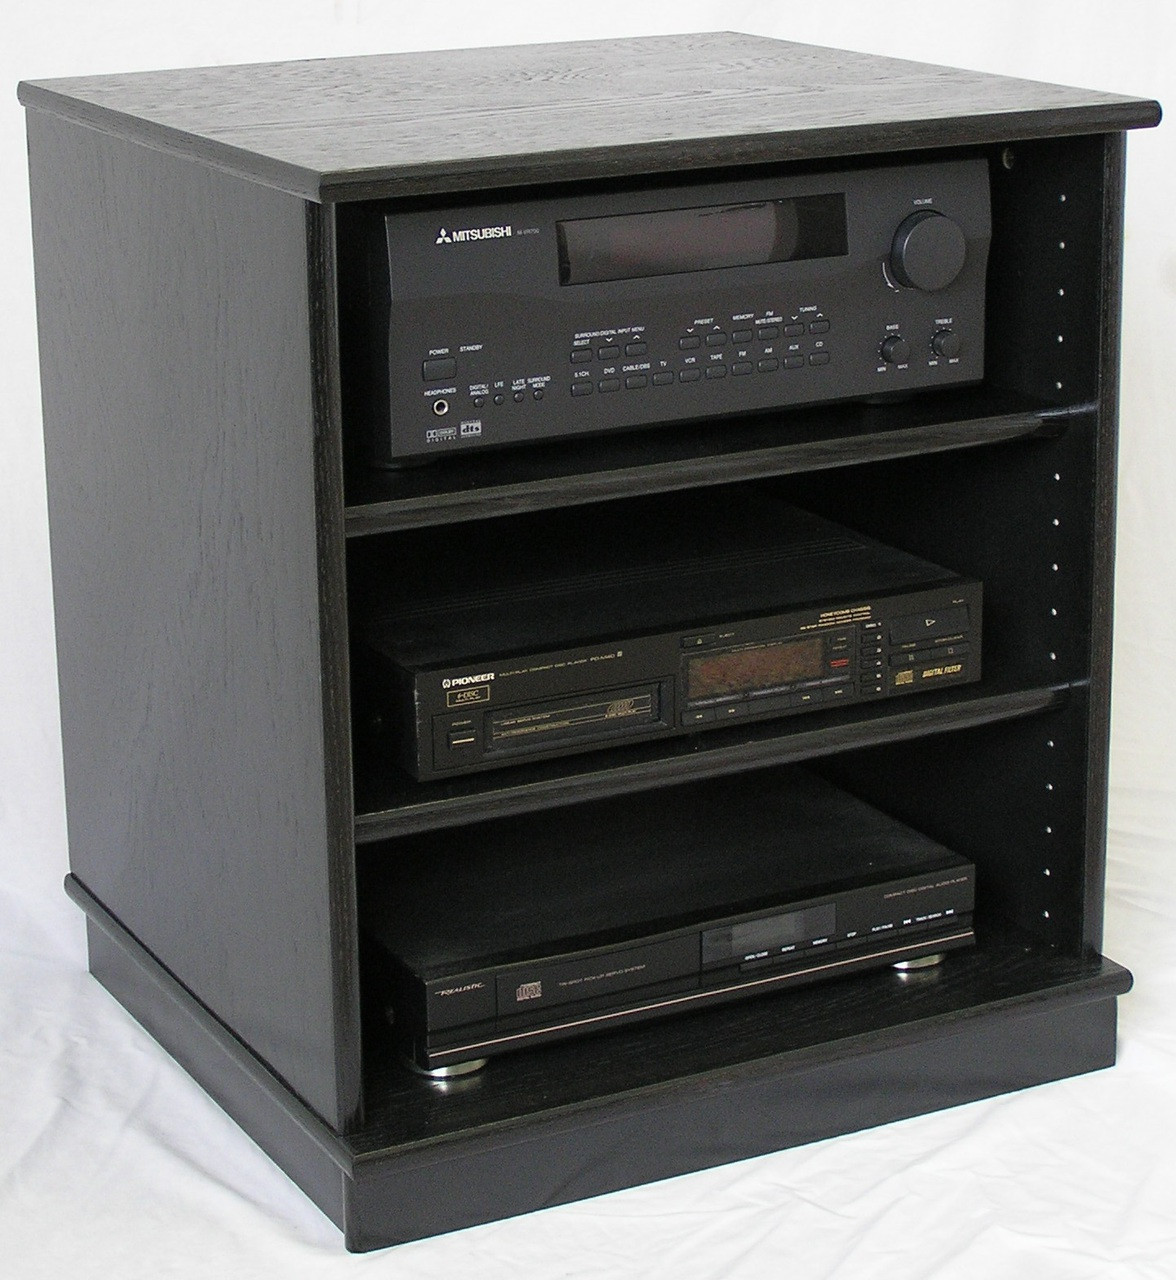 Best Front View Of Small Black Oak Entertainment Center Stereo Cabinet.  (888) 850